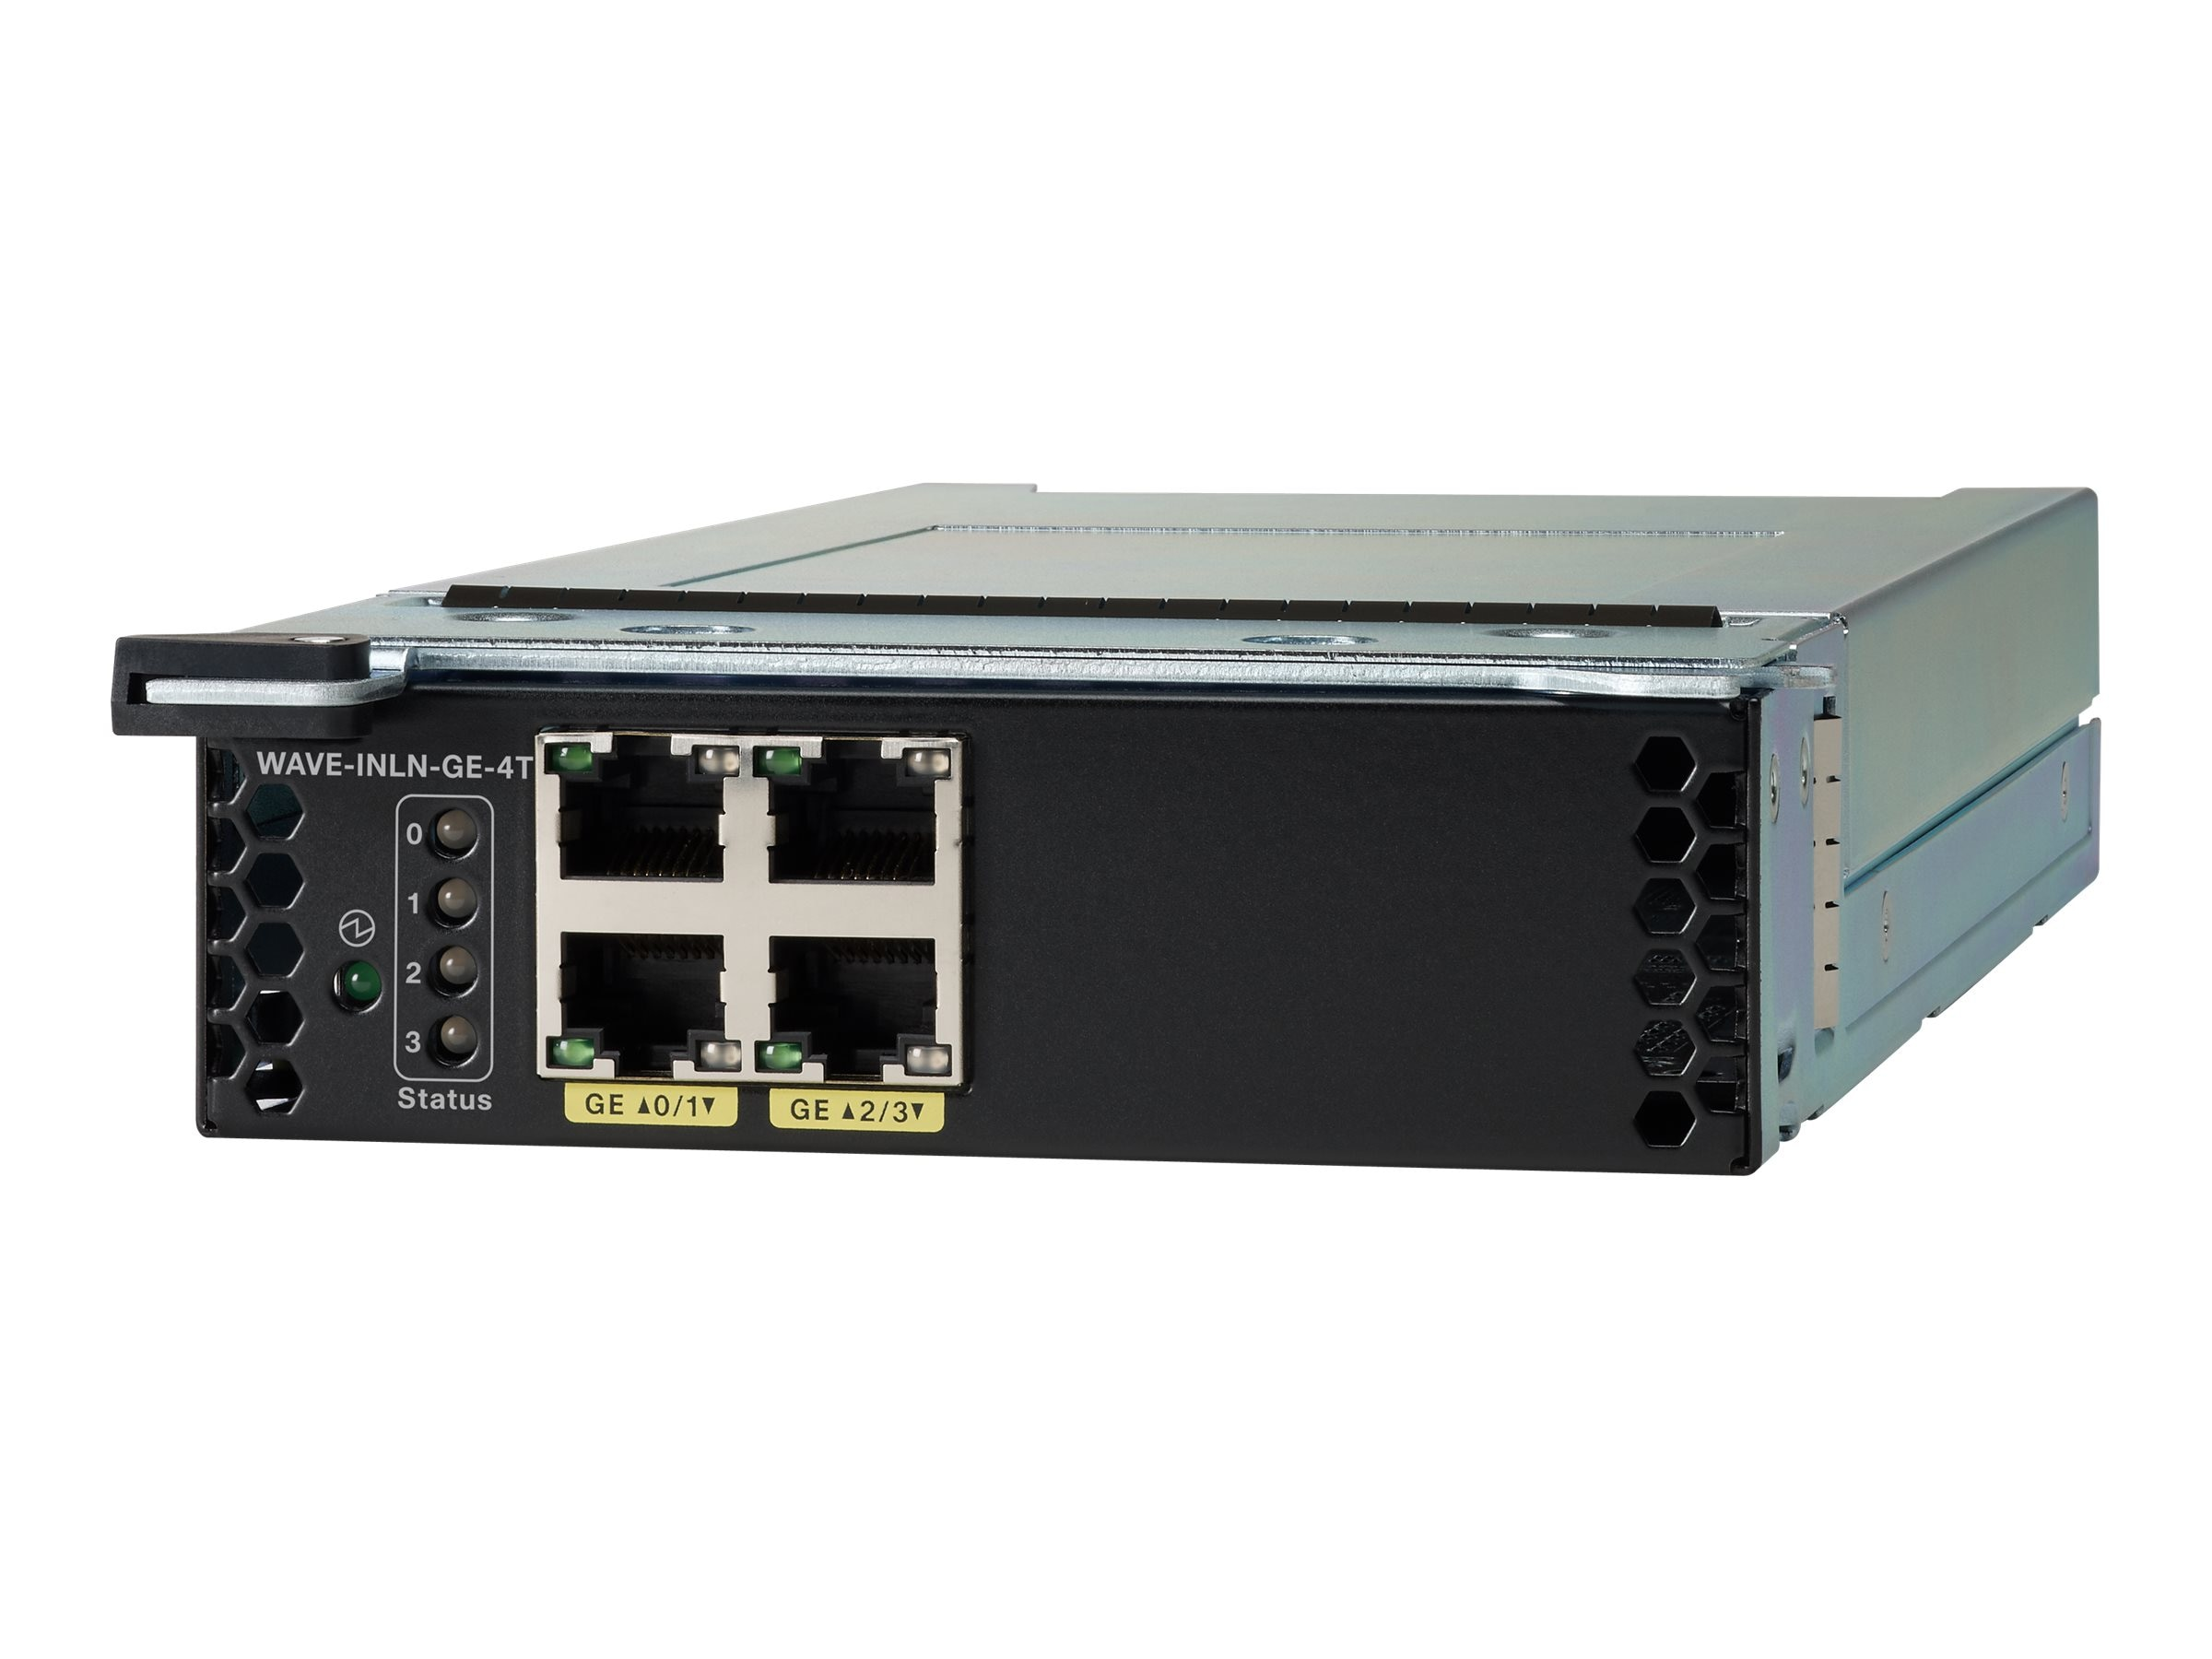 Cisco 4-Port Gigabit Ethernet Copper Module, WAVE-INLN-GE-4T, 13302462, Network Device Modules & Accessories